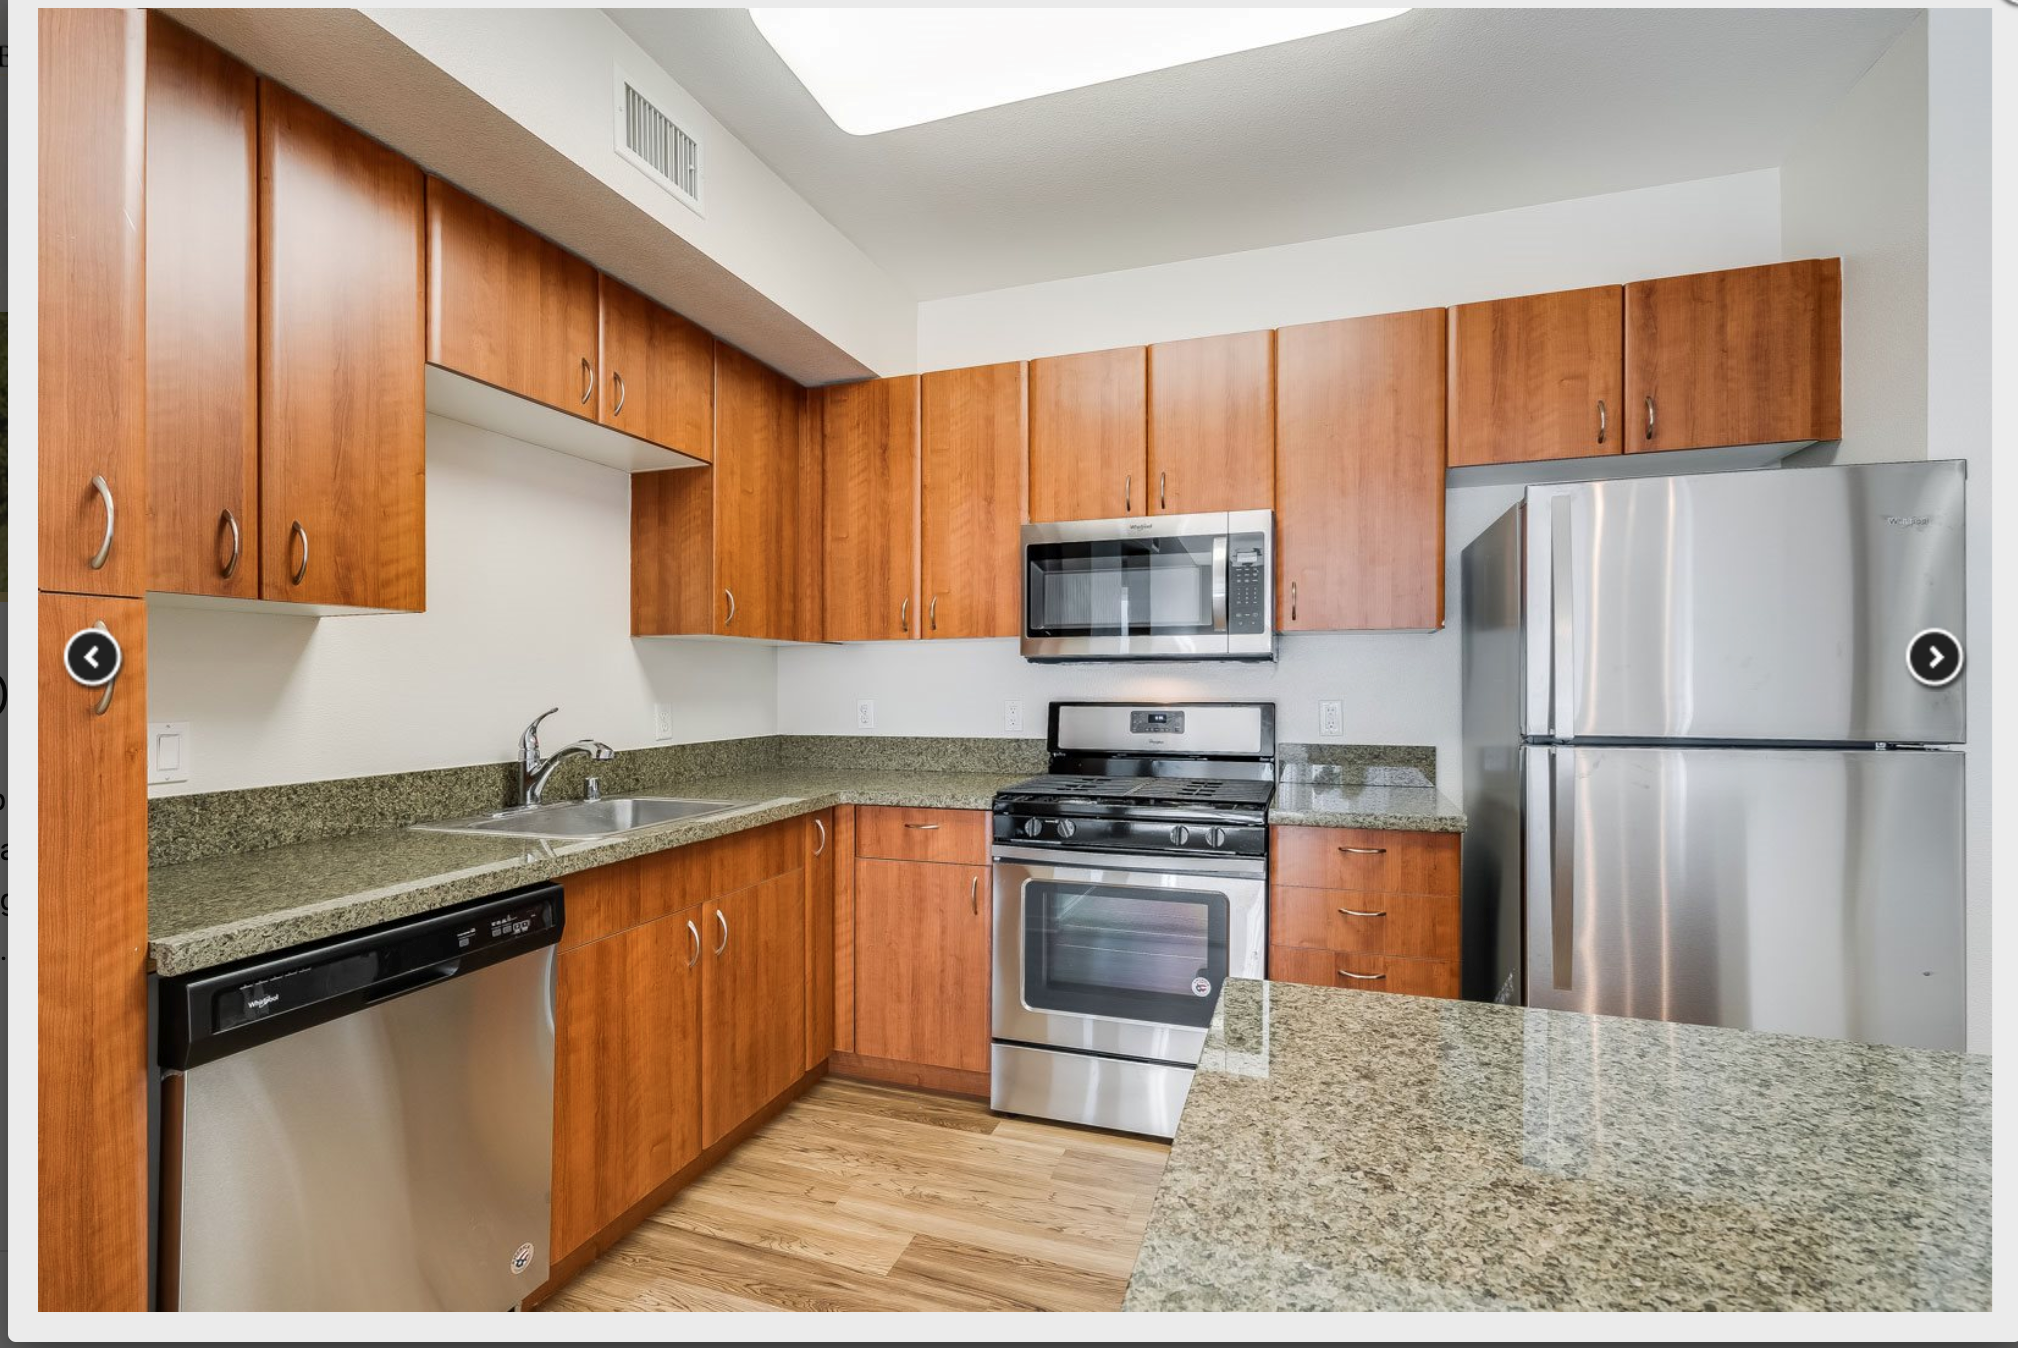 Take Over My Lease >> 2510 1br Take Over My Lease One Half Month Free No Deposit 2 Mins Walk To Bart Dublin Pleasanton 1 Bhk Apartments And Flats In